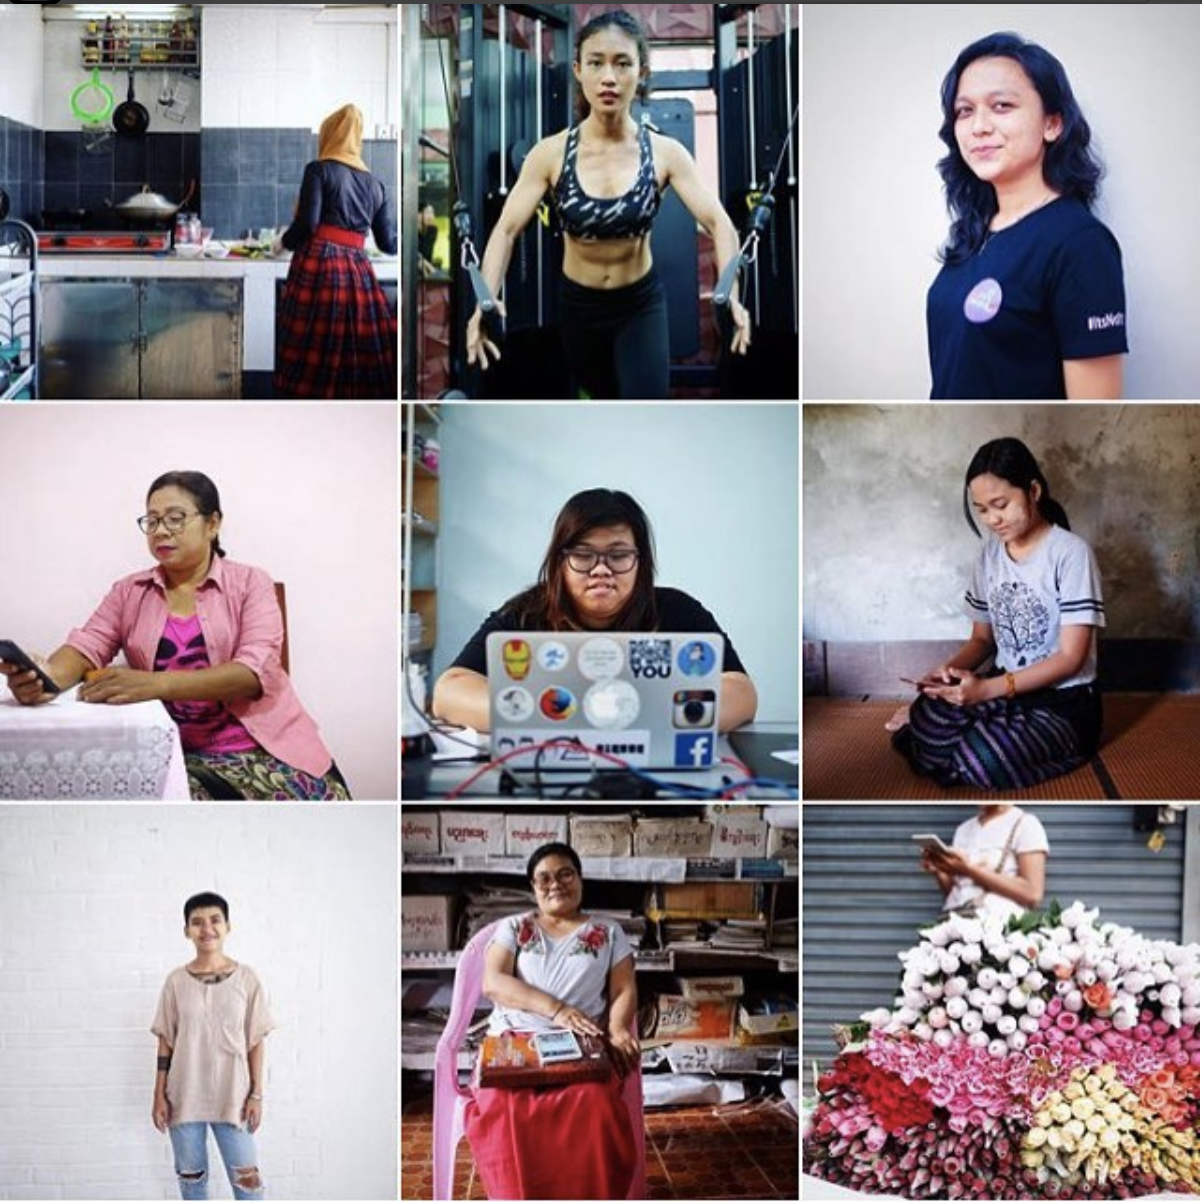 In Myanmar, Facebook has provided women new opportunities for business, activism and organizing, while also being a hotbed of harassment.  I contributed 11 portraits to The Lily that show women in Myanmar who see the good, and the bad, that Facebook has to offer.   You can see the entire story here: https://www.thelily.com/officials-blame-facebook-for-fueling-ethnic-tension-in-myanmar-for-these-women-its-more-complicated/